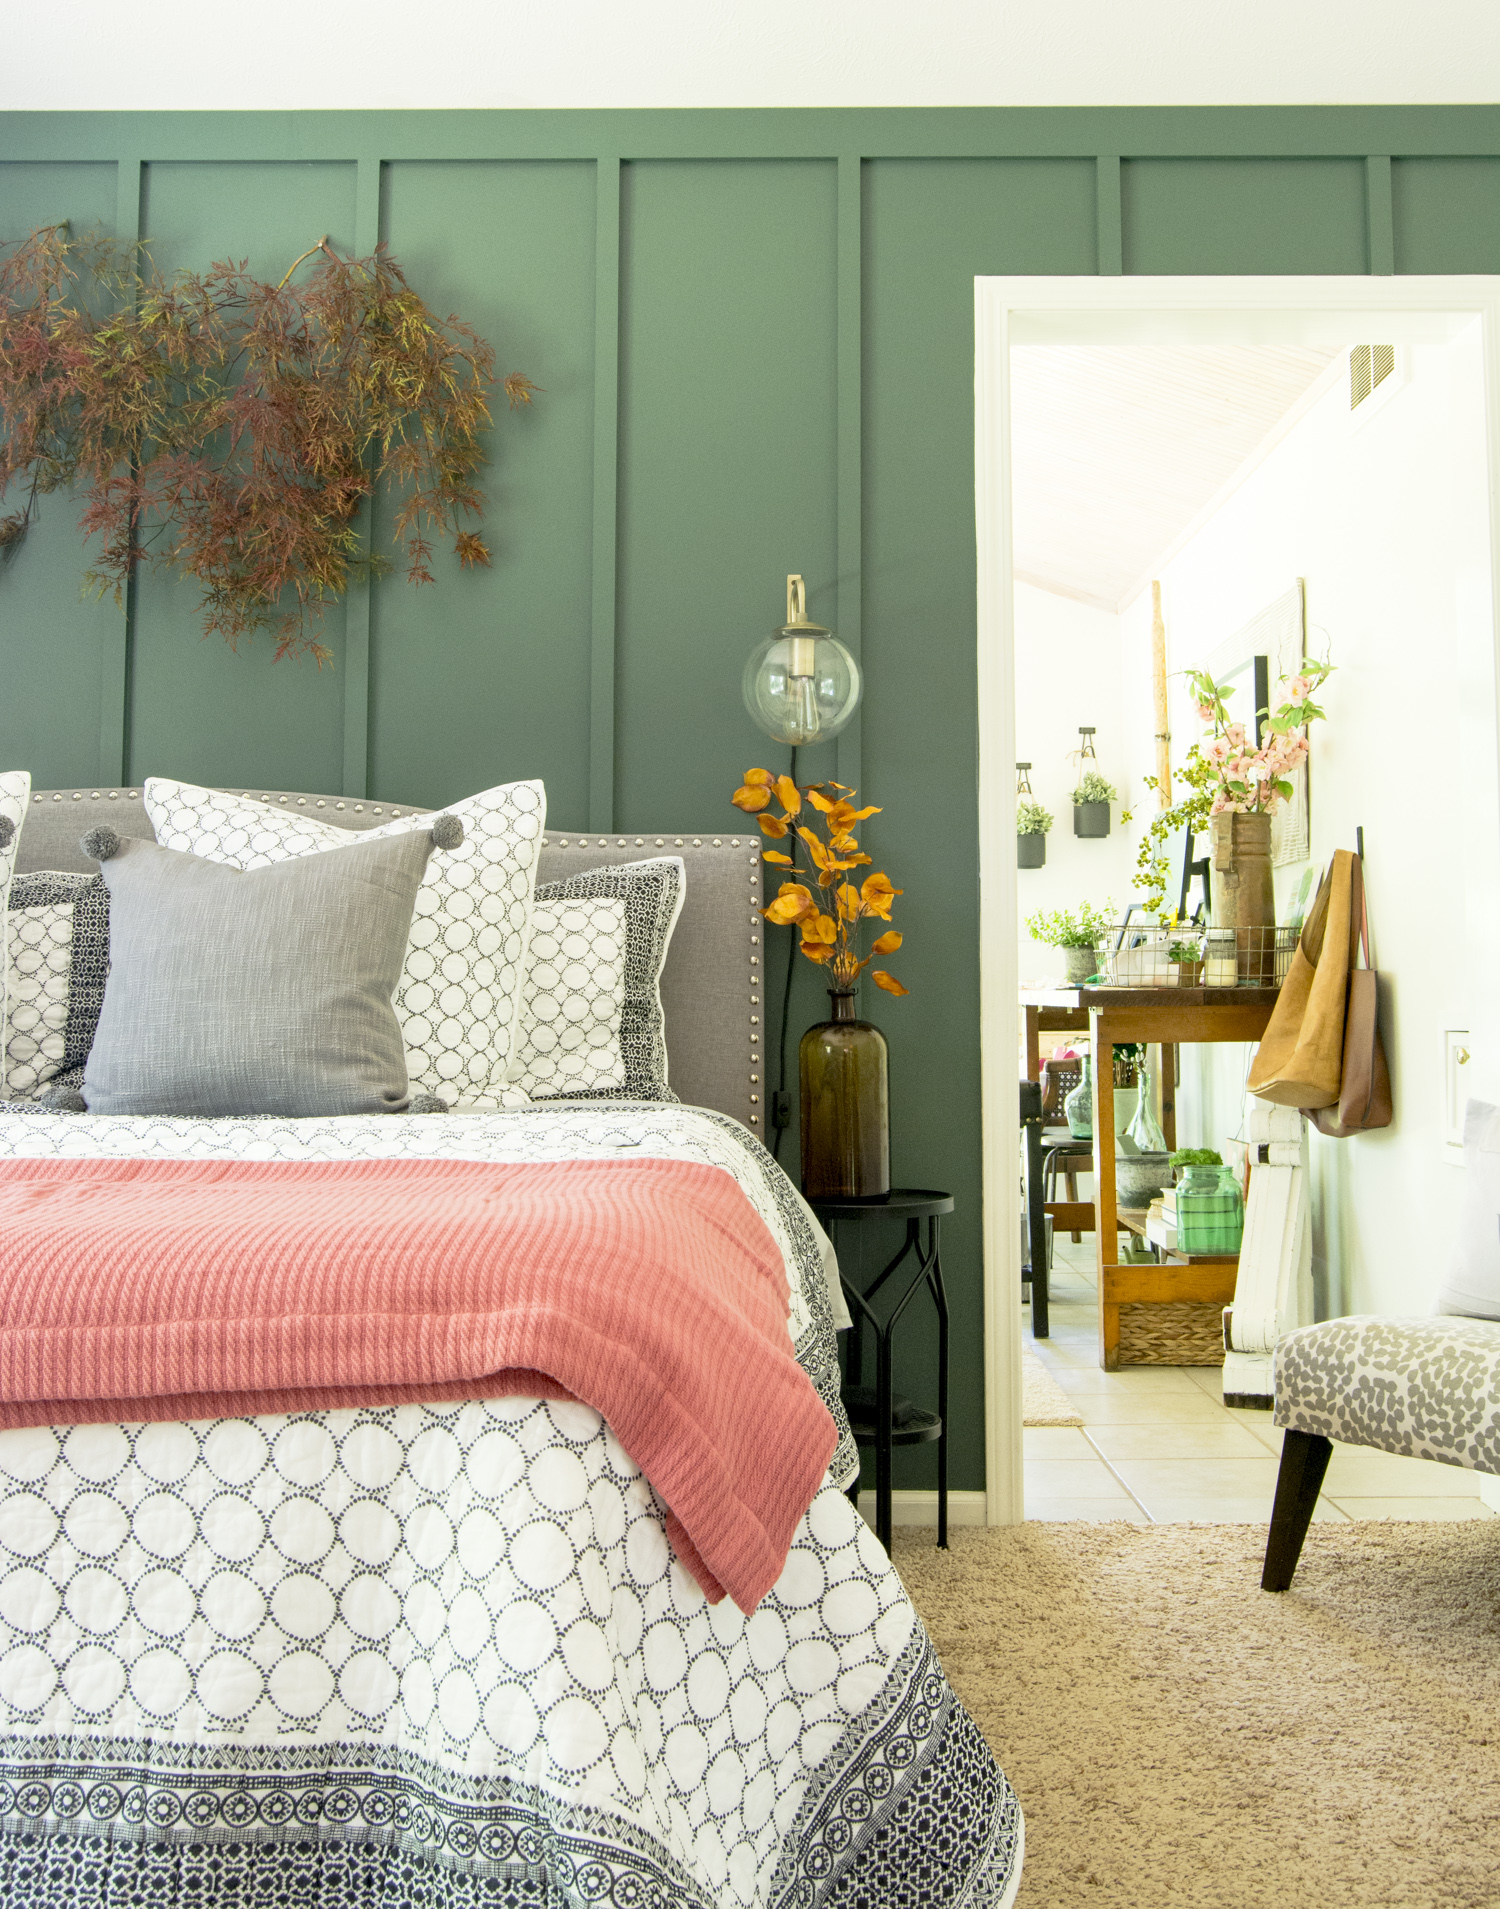 Green bedroom kellyelko.com #green #bedroom #bedroomdecor #falldecor #interiordesign #farmhousestyle